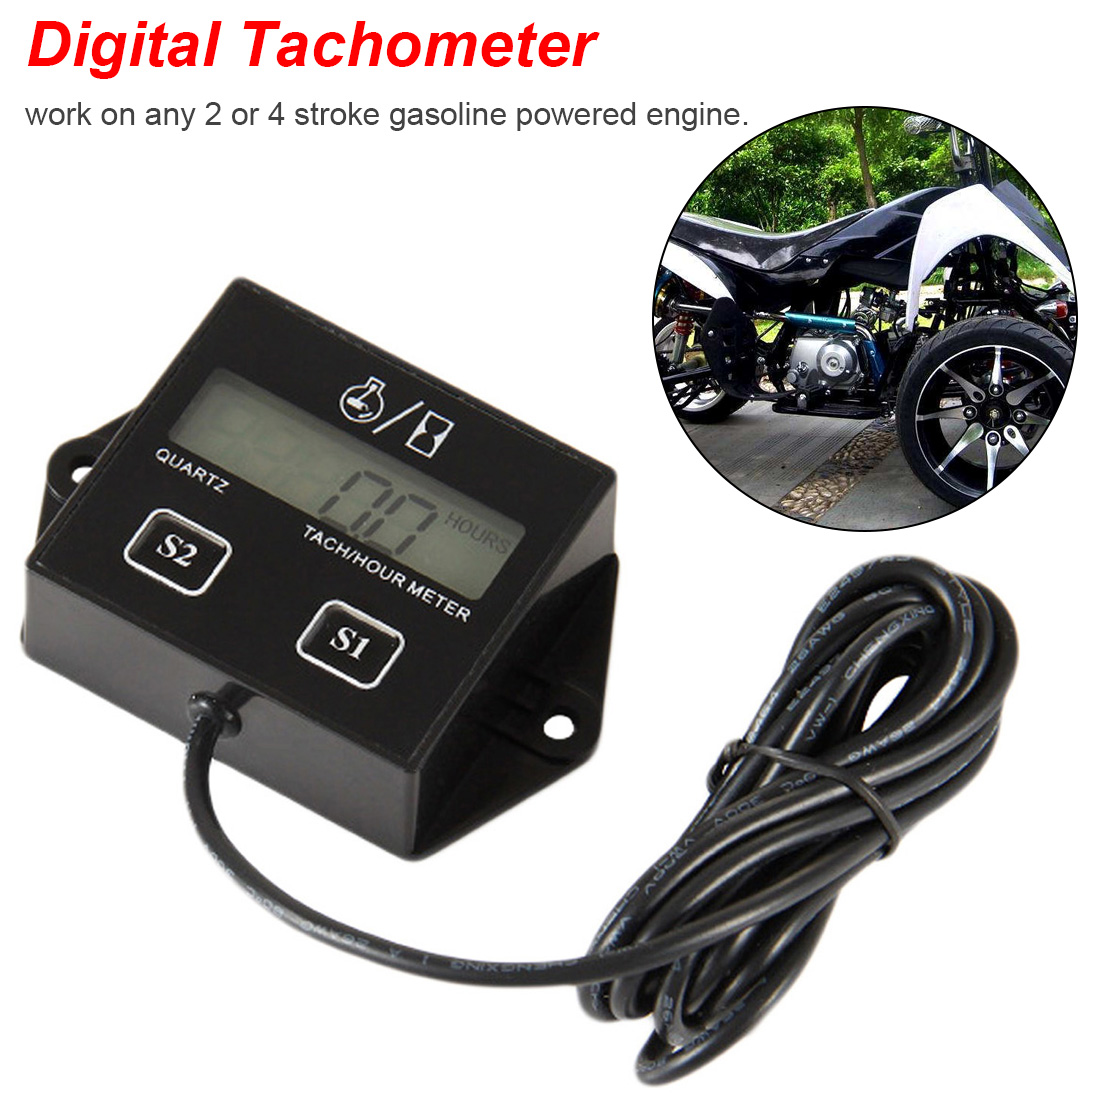 4-digit Counters Engine Tach Hour Meter Tachometer Gauge Inductive Display For Motorcycle Motor Marine chainsaw